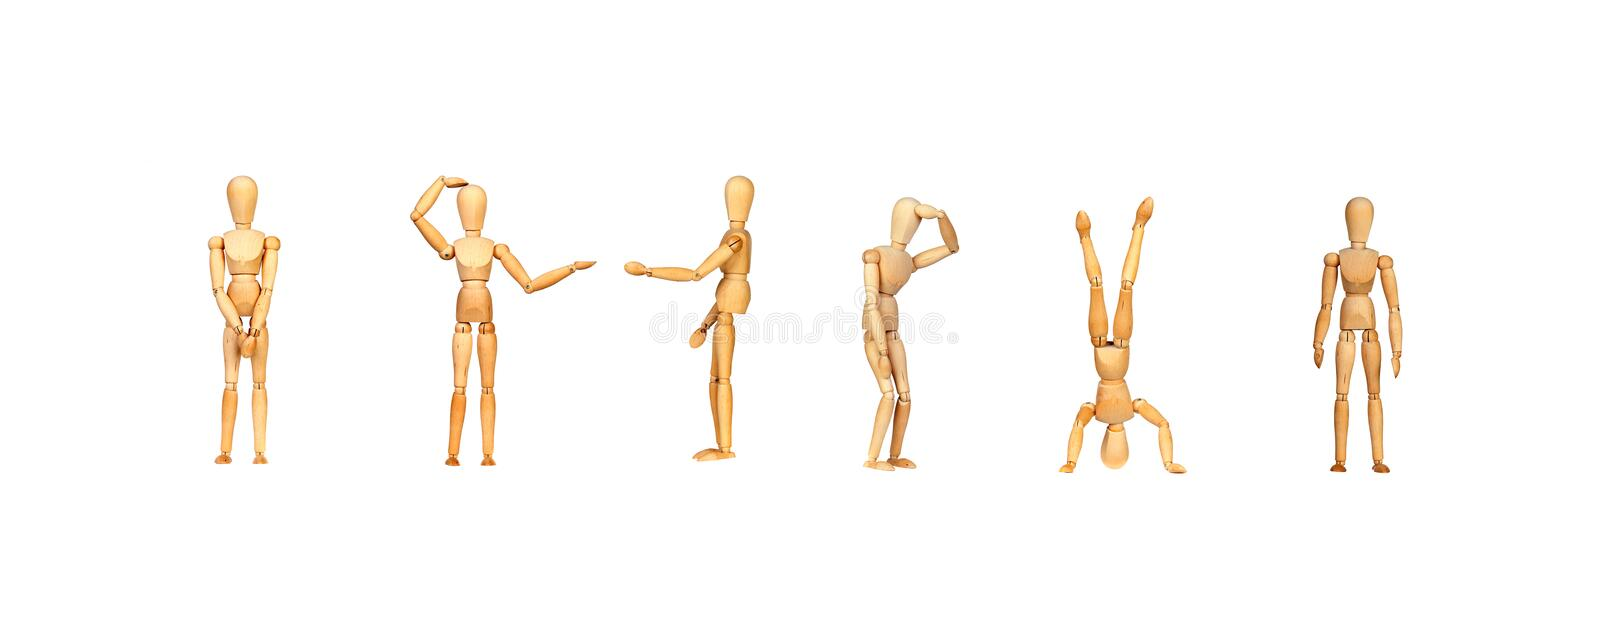 Many wooden mannequin doing differents gestures royalty free stock photo